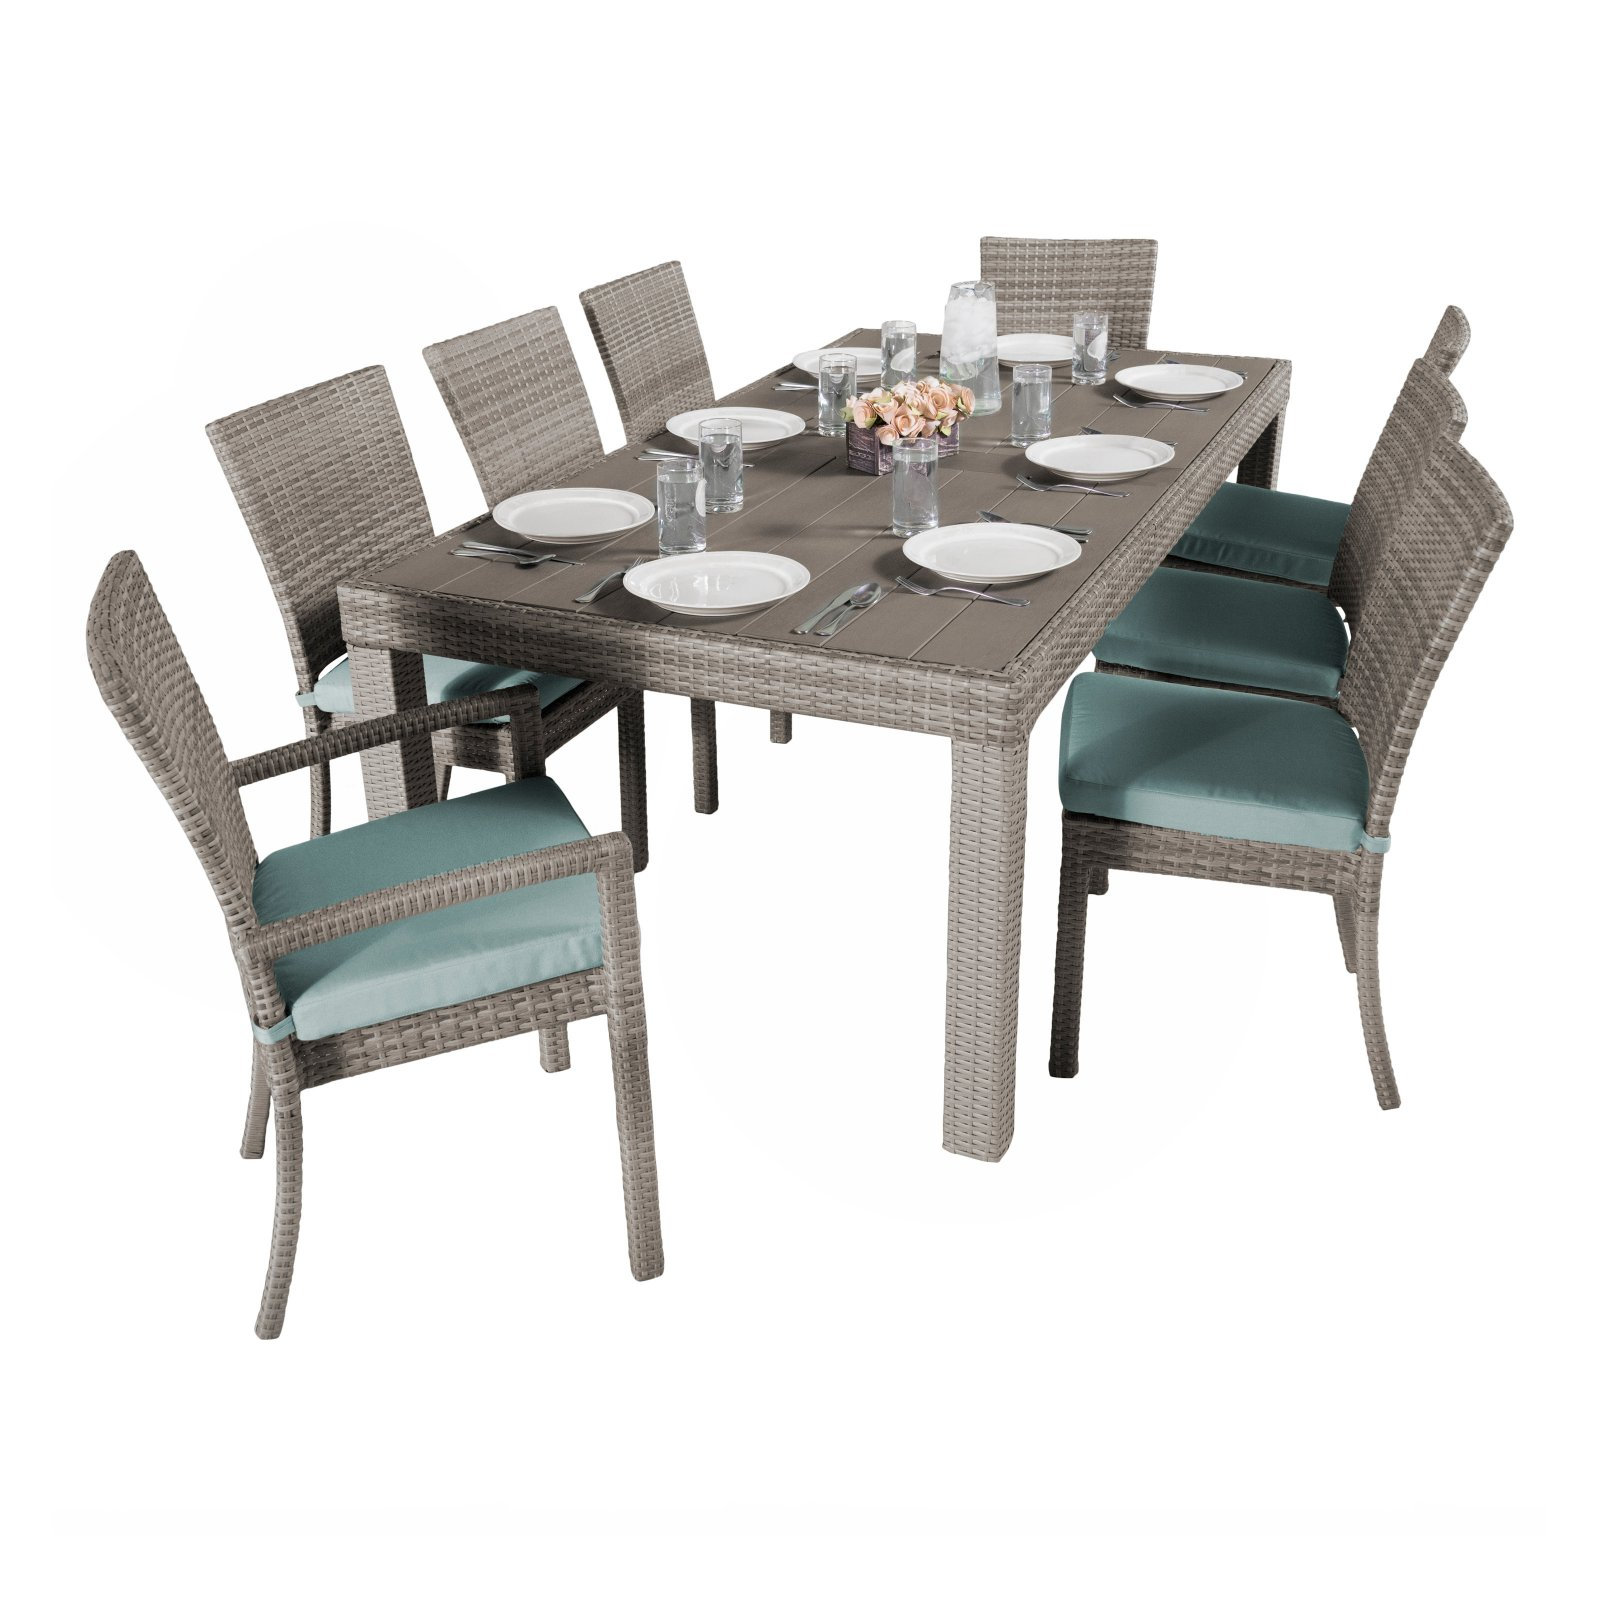 RST Brands Cannes 9 Piece Patio Dining Set